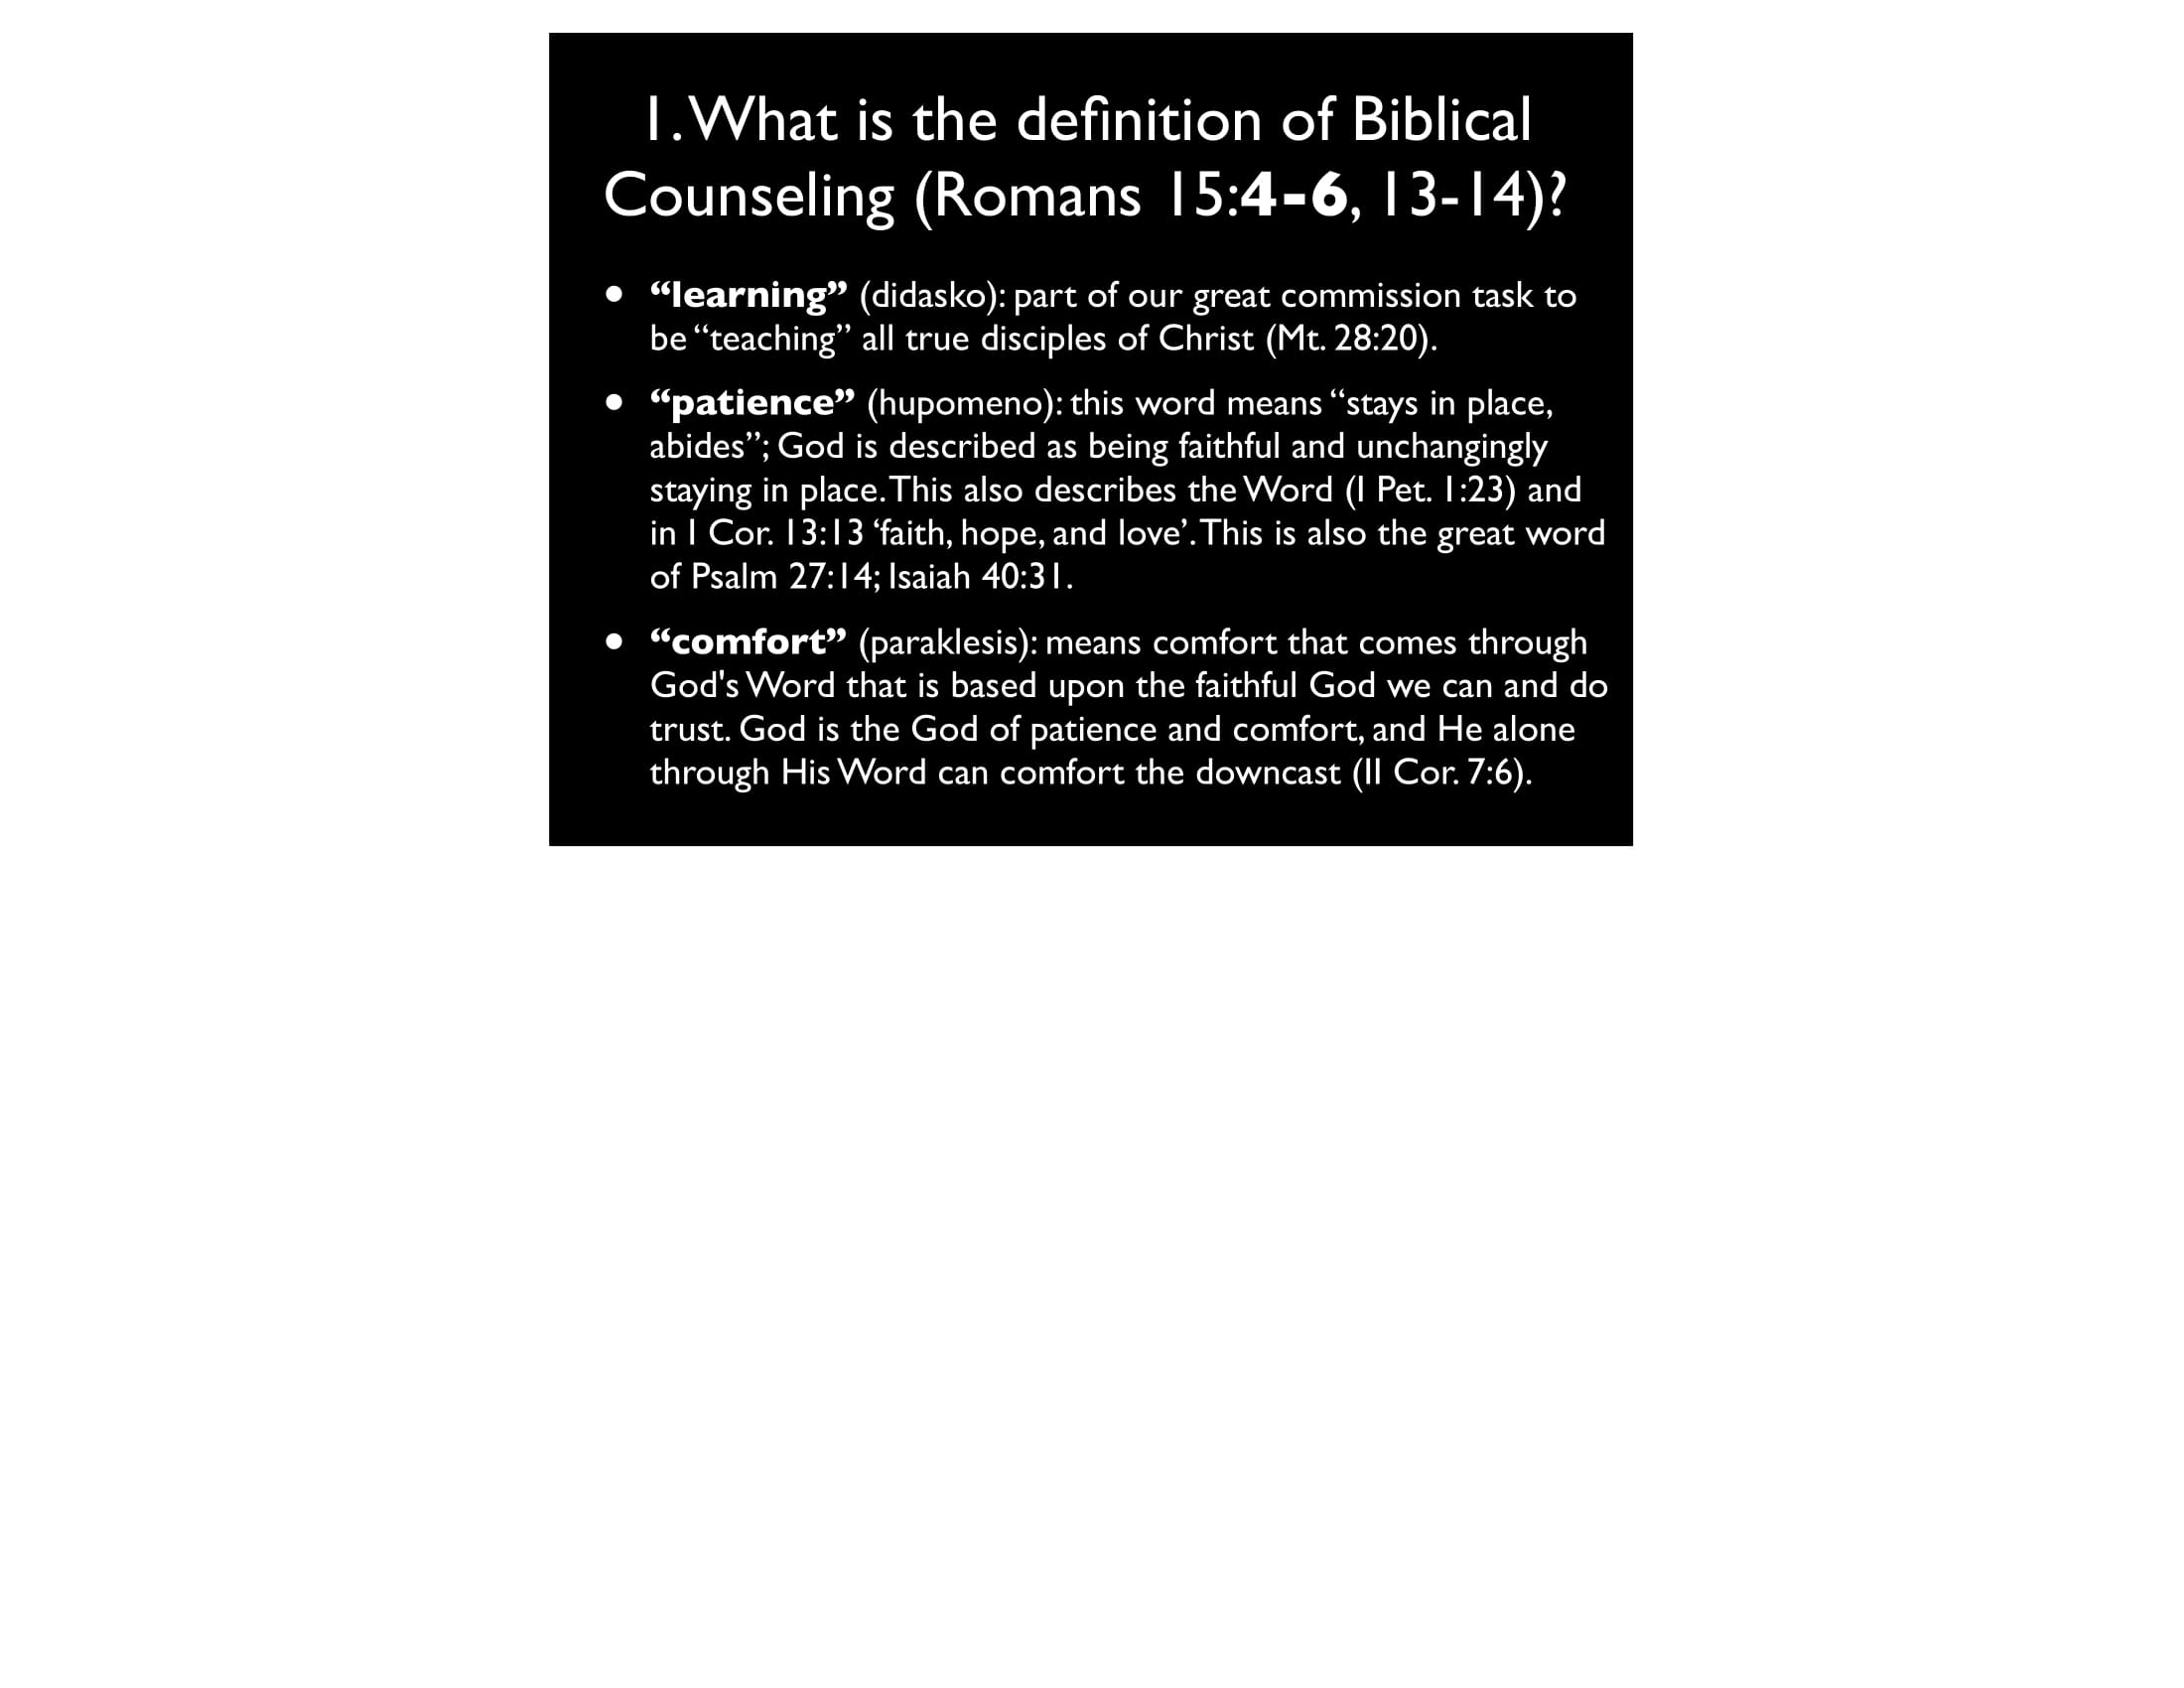 BC&D-01 - The Biblical Basis For Noutheitc Counseling-03